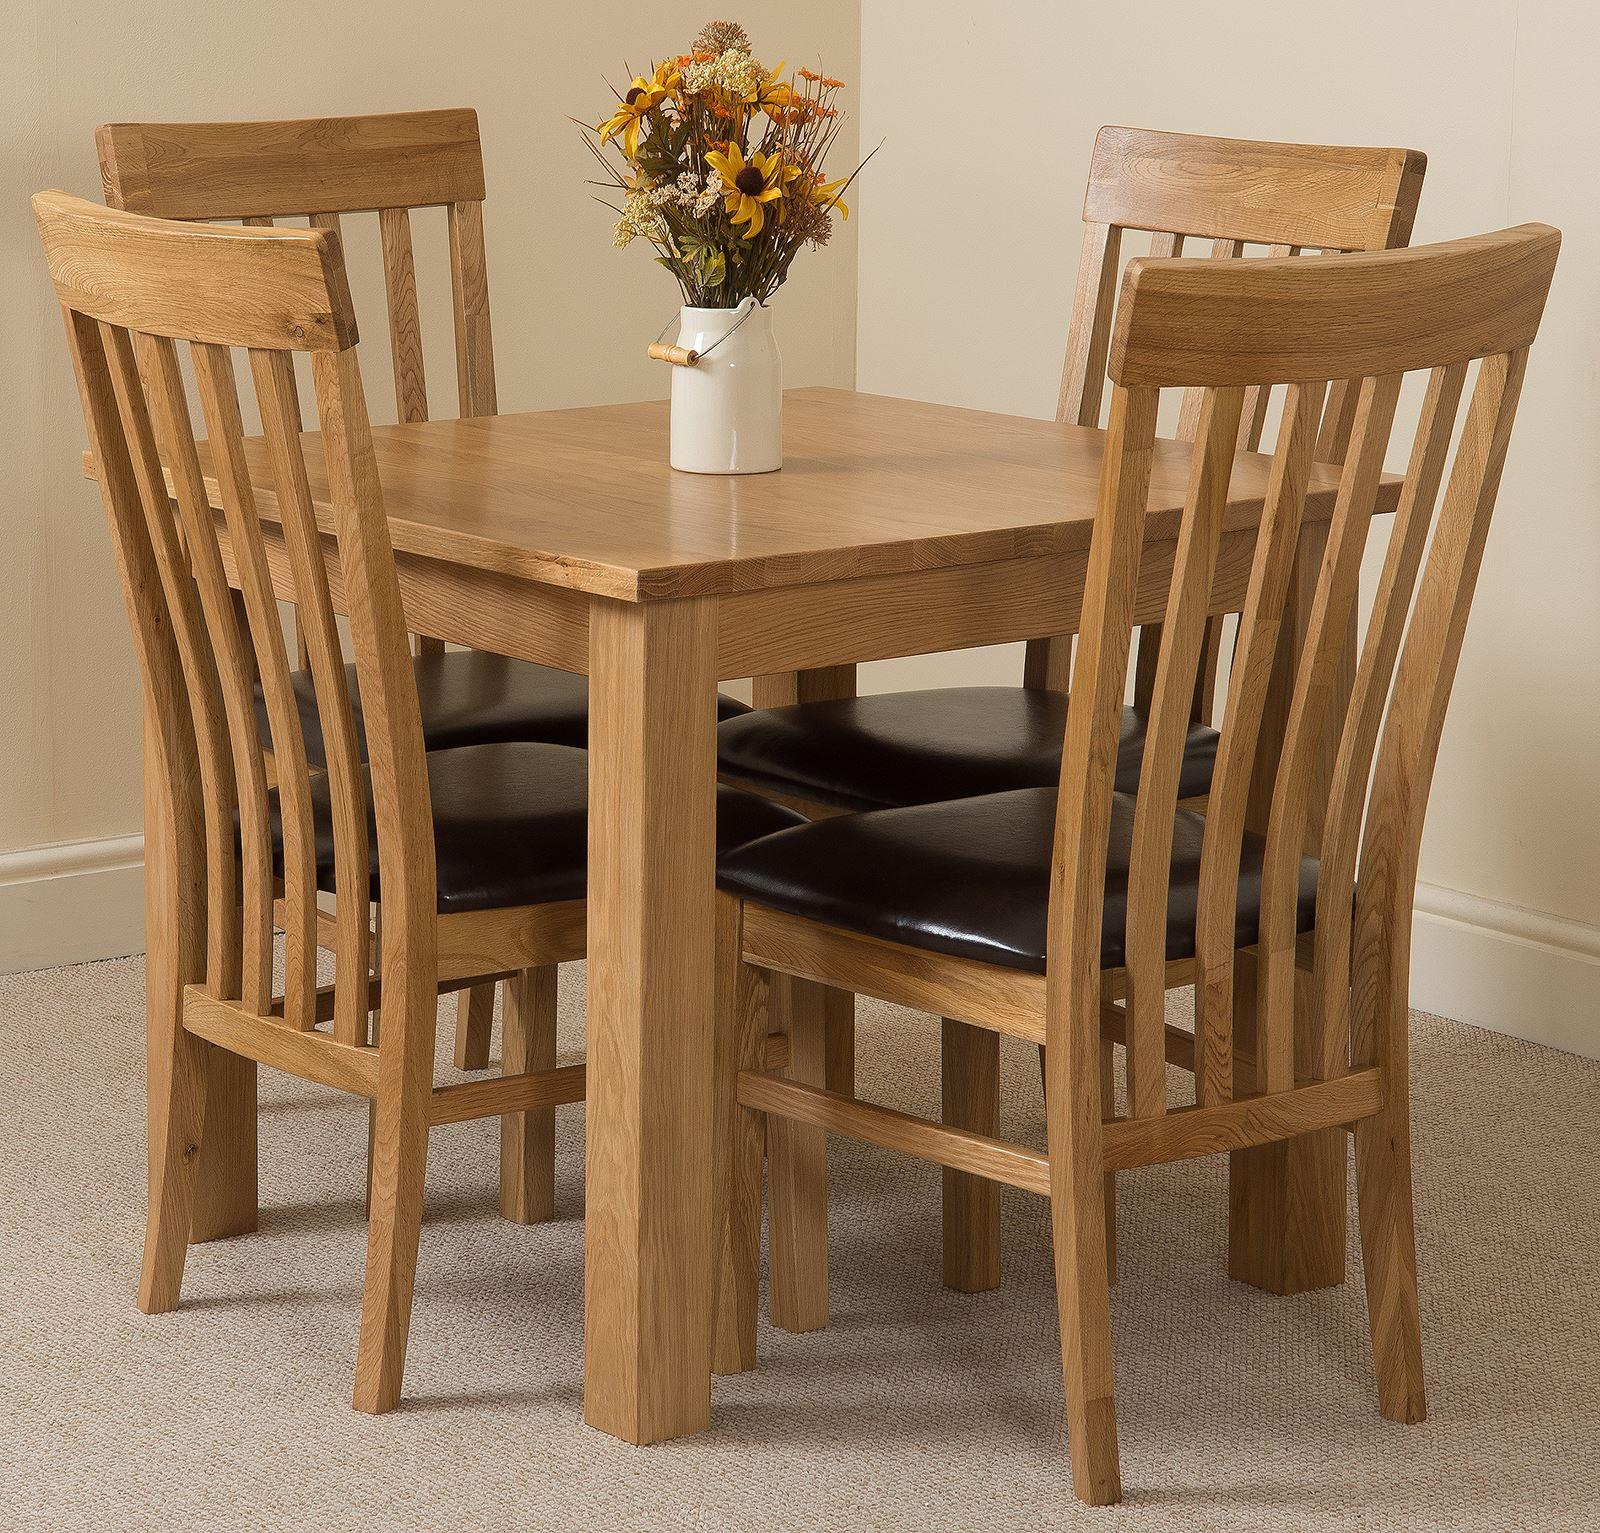 Oslo Solid Oak Dining Table and 4 Harvard Solid Oak Leather Chairs